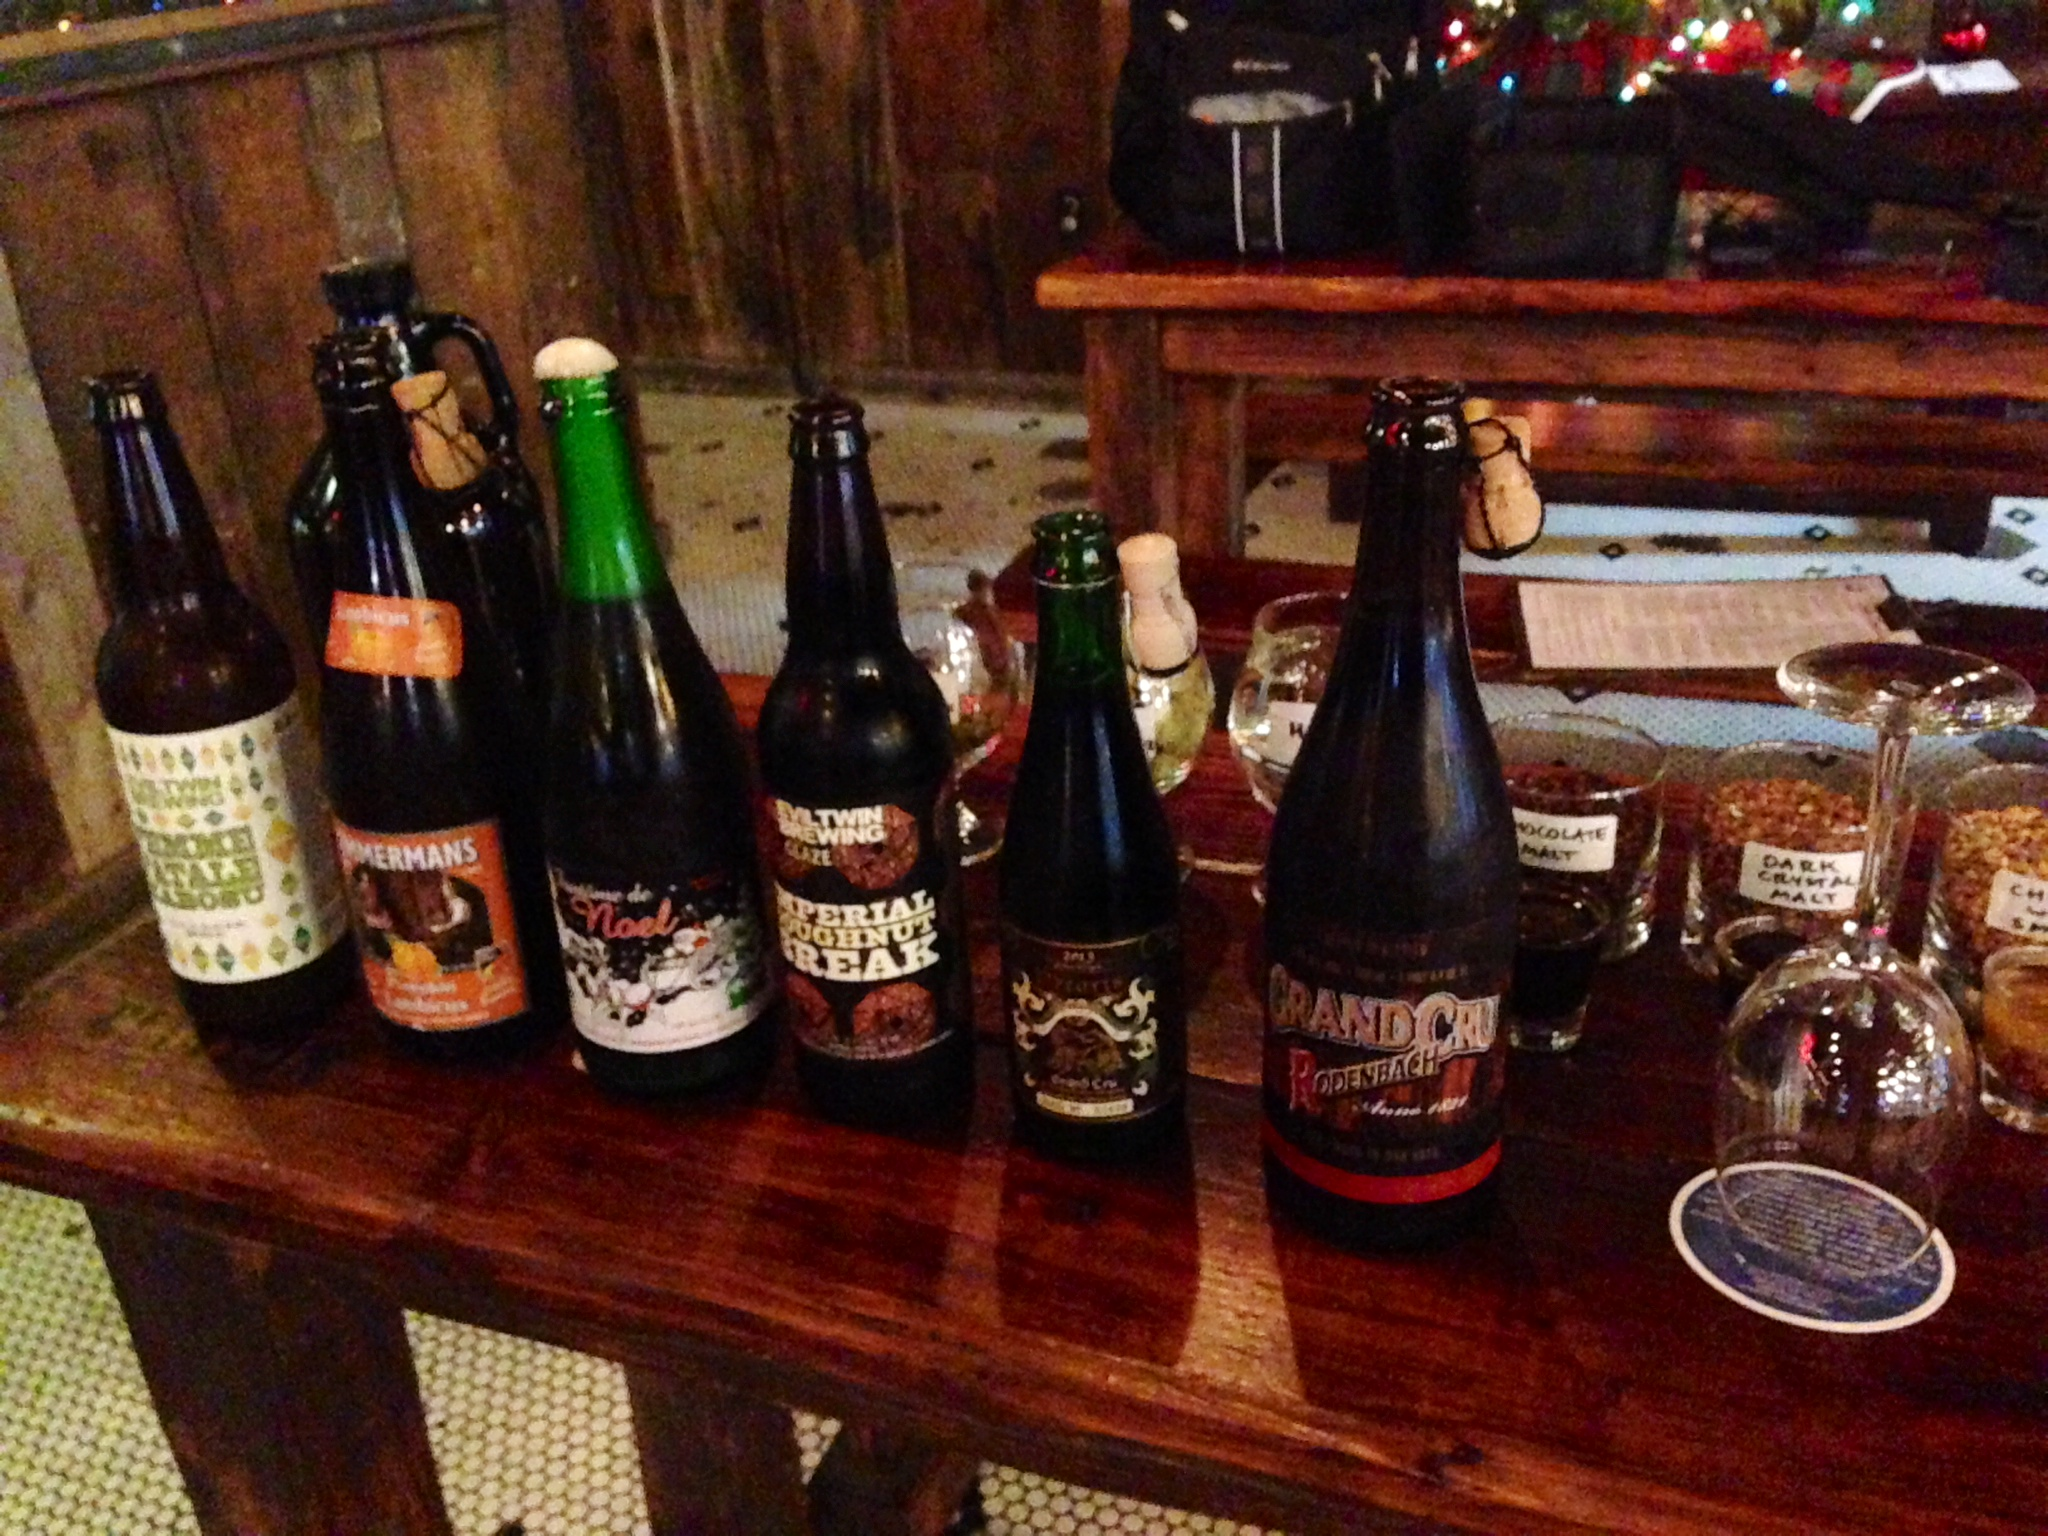 Americans get more innovative with craft beer